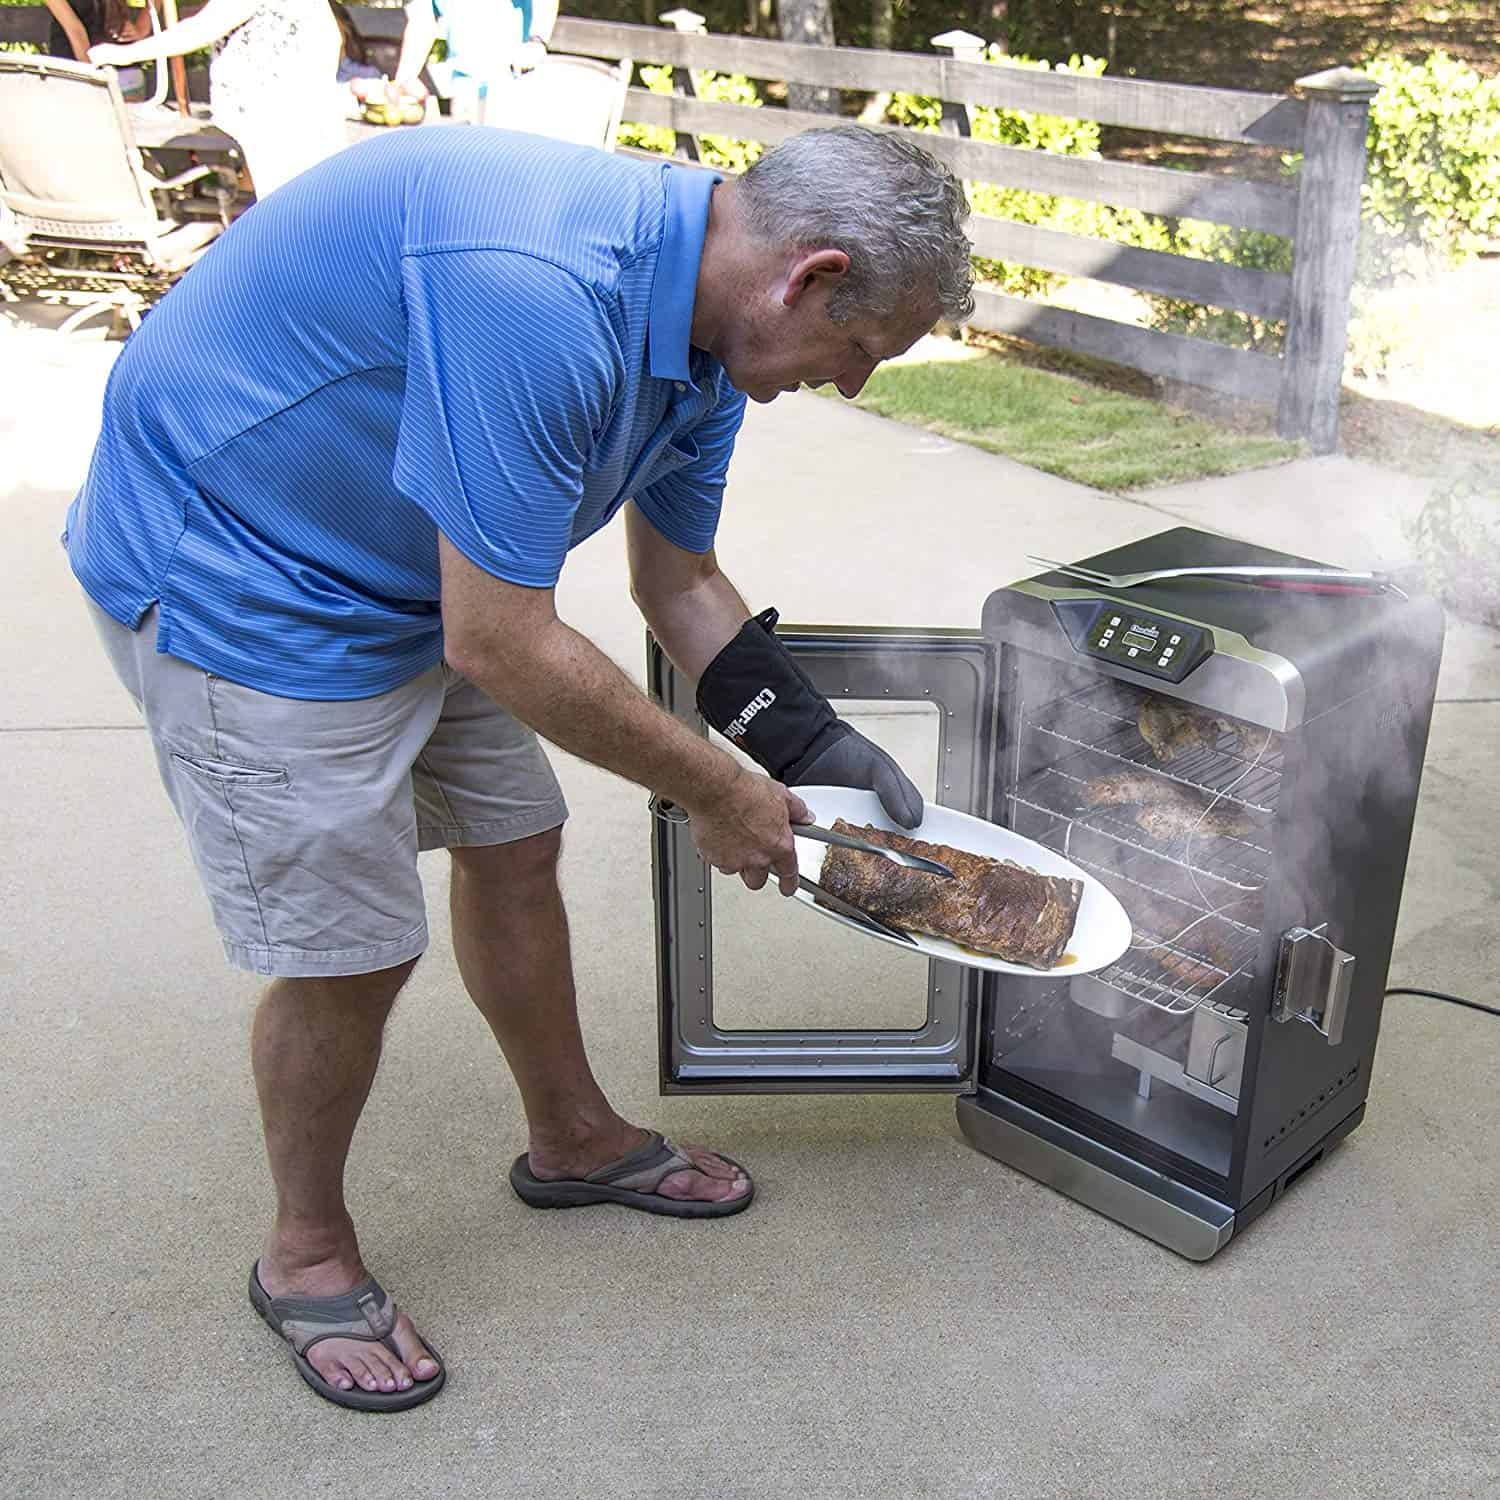 man grilling in a char-broil smoker